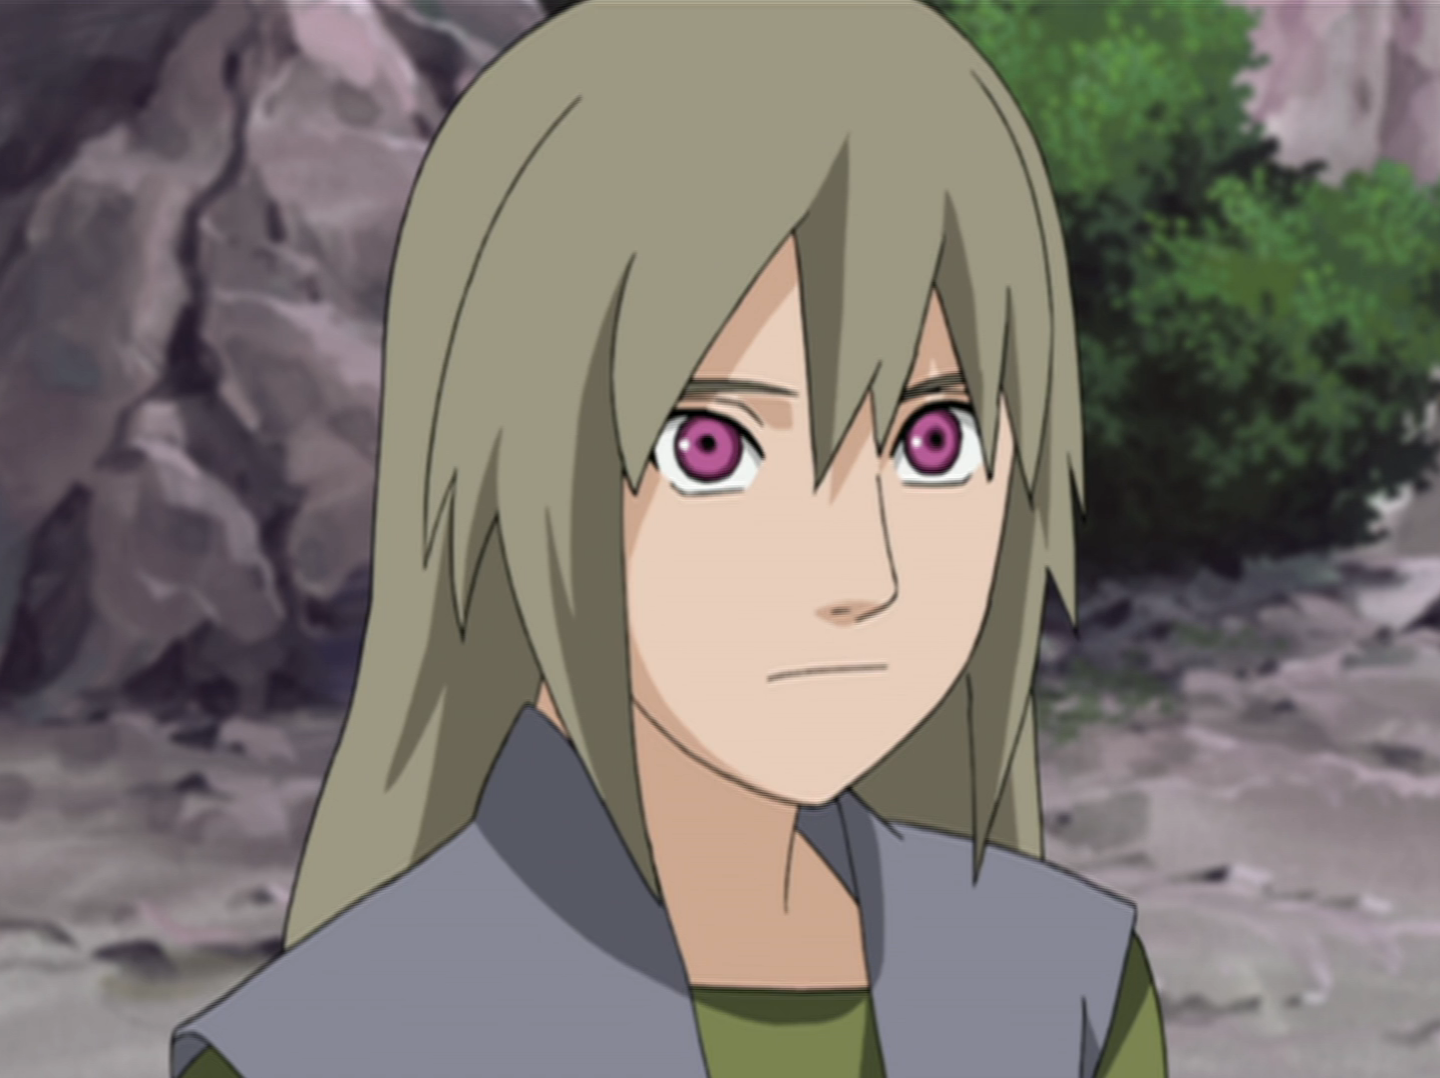 Image 40 Of 50 Laura Bailey Naruto Voice Characters By